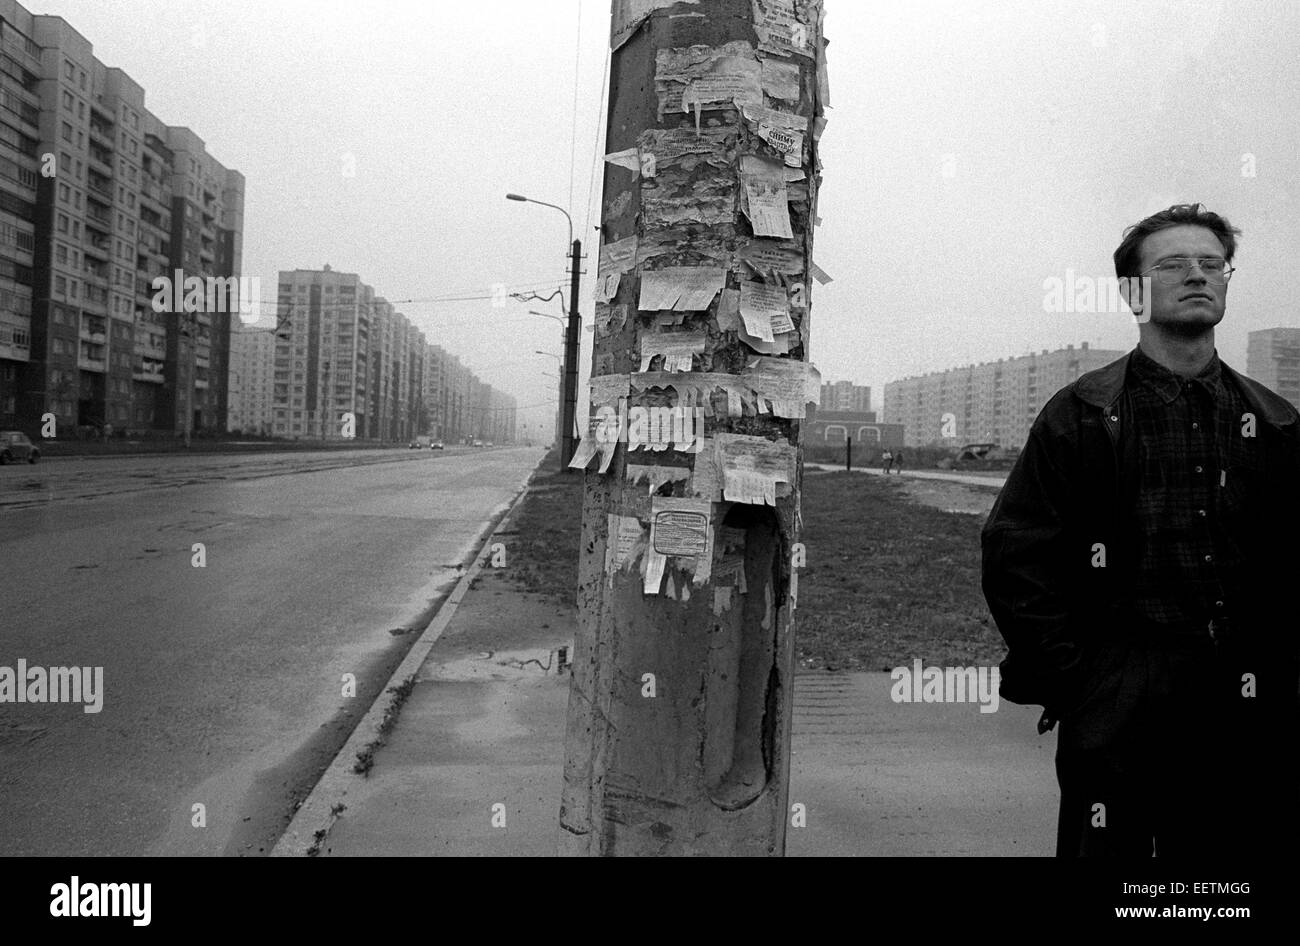 An urban Street scene in St Petersburg, Russia with notices stuck on pole - Stock Image